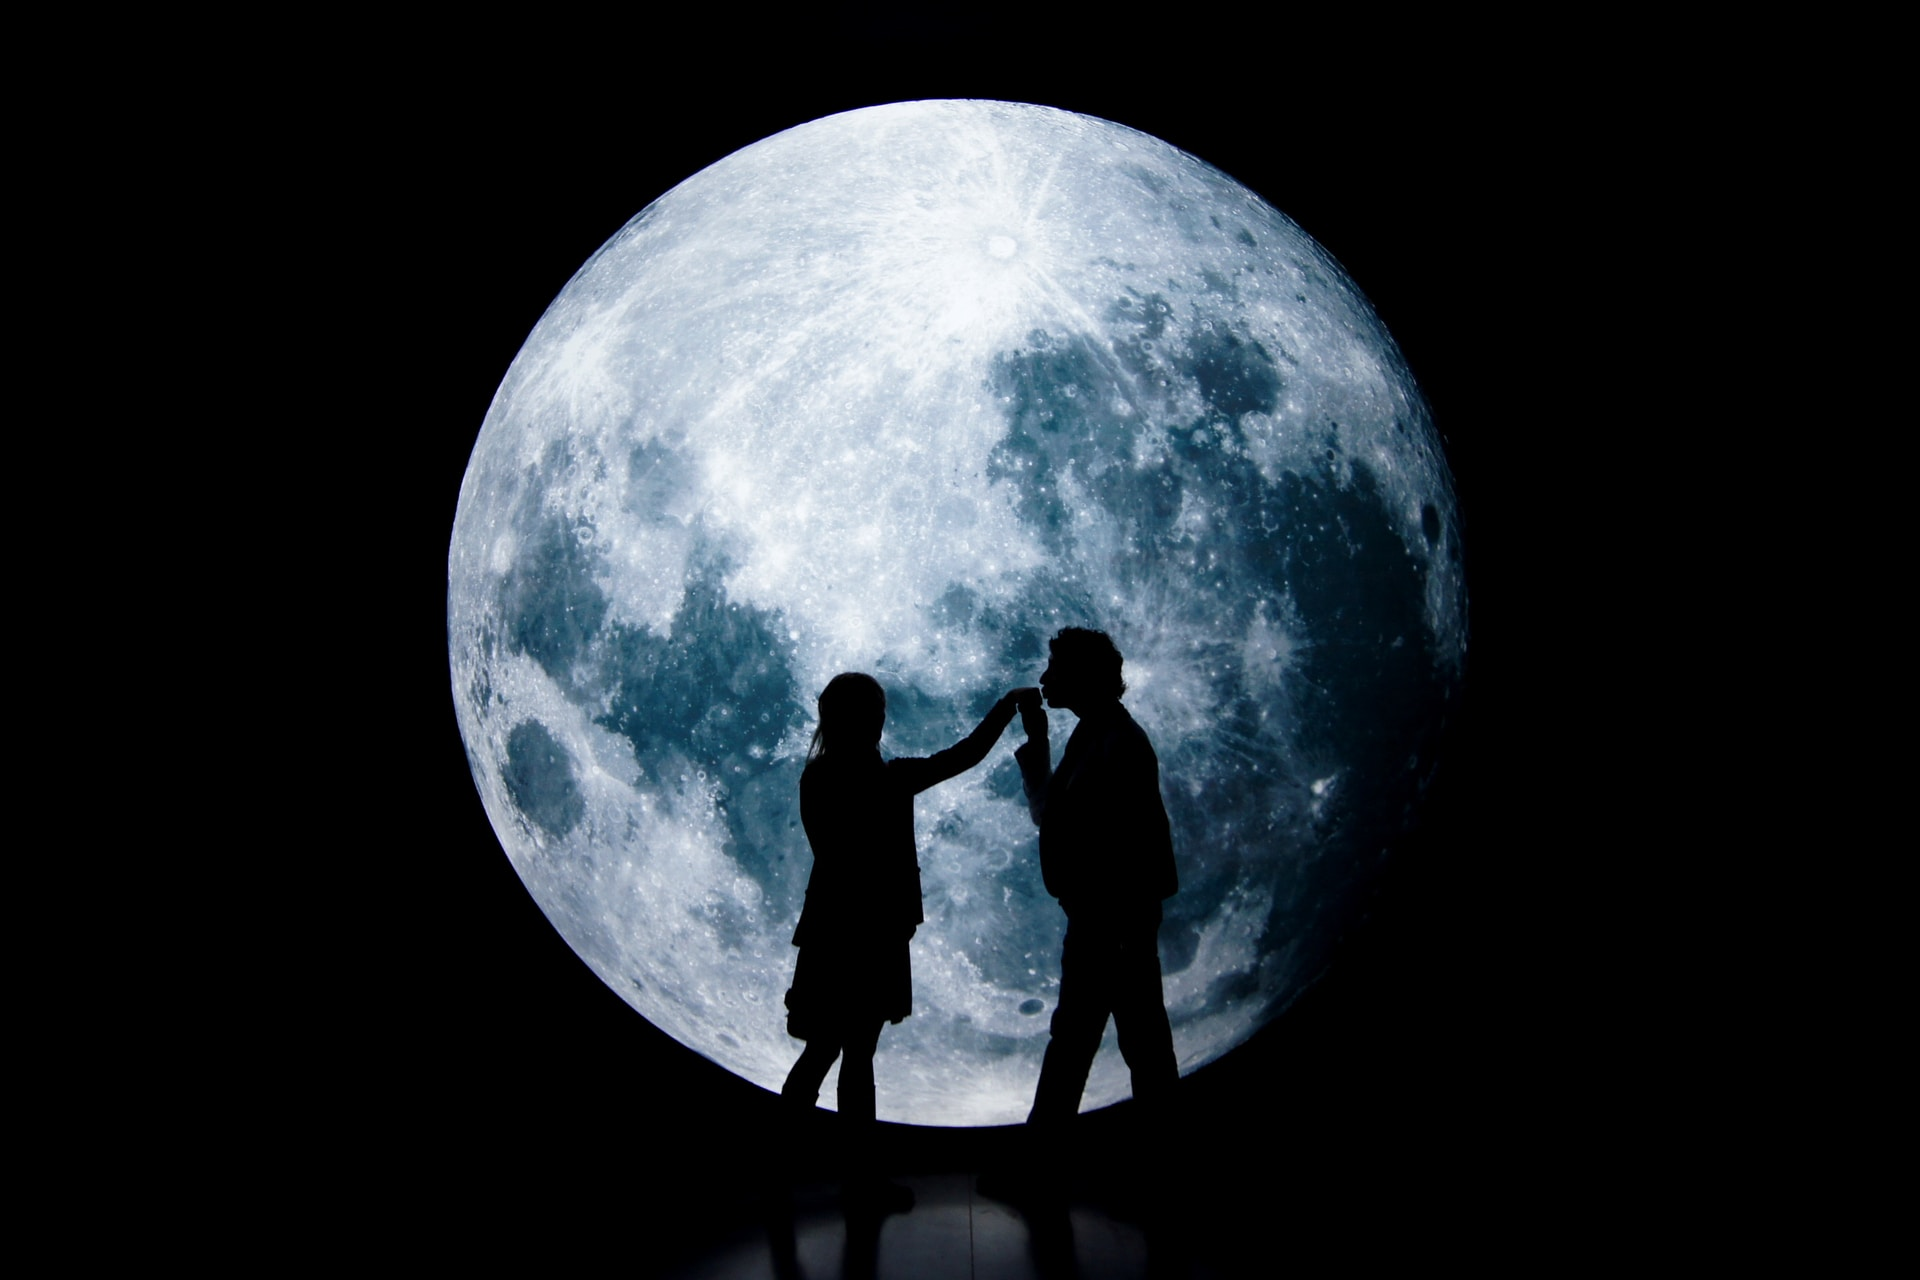 man and woman standing on a round moon